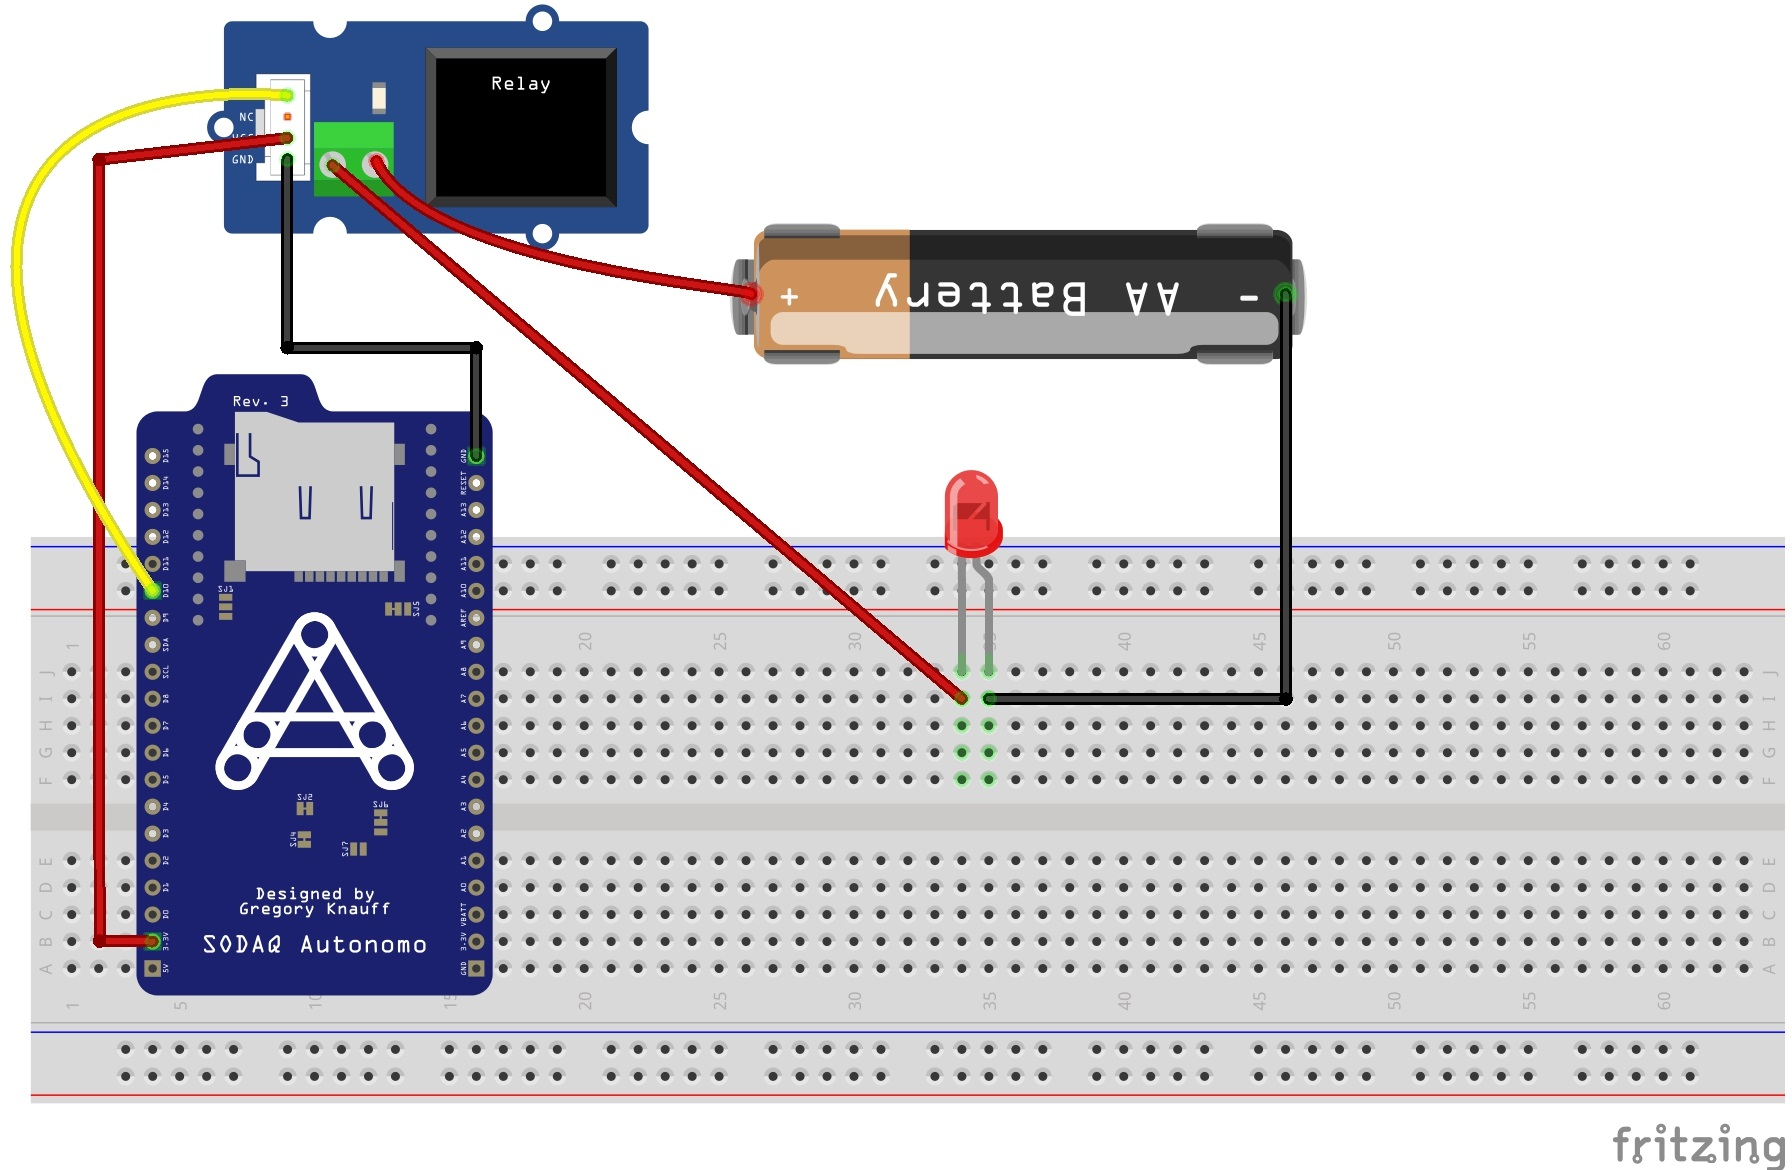 From Atoz 2dof Arduino Wiper Playseat in addition Voltage Regulators in addition Grove Relay together with Modify Ac Dimmer To Automatic Light Switch Controller moreover Blog. on wiring a potentiometer for motor